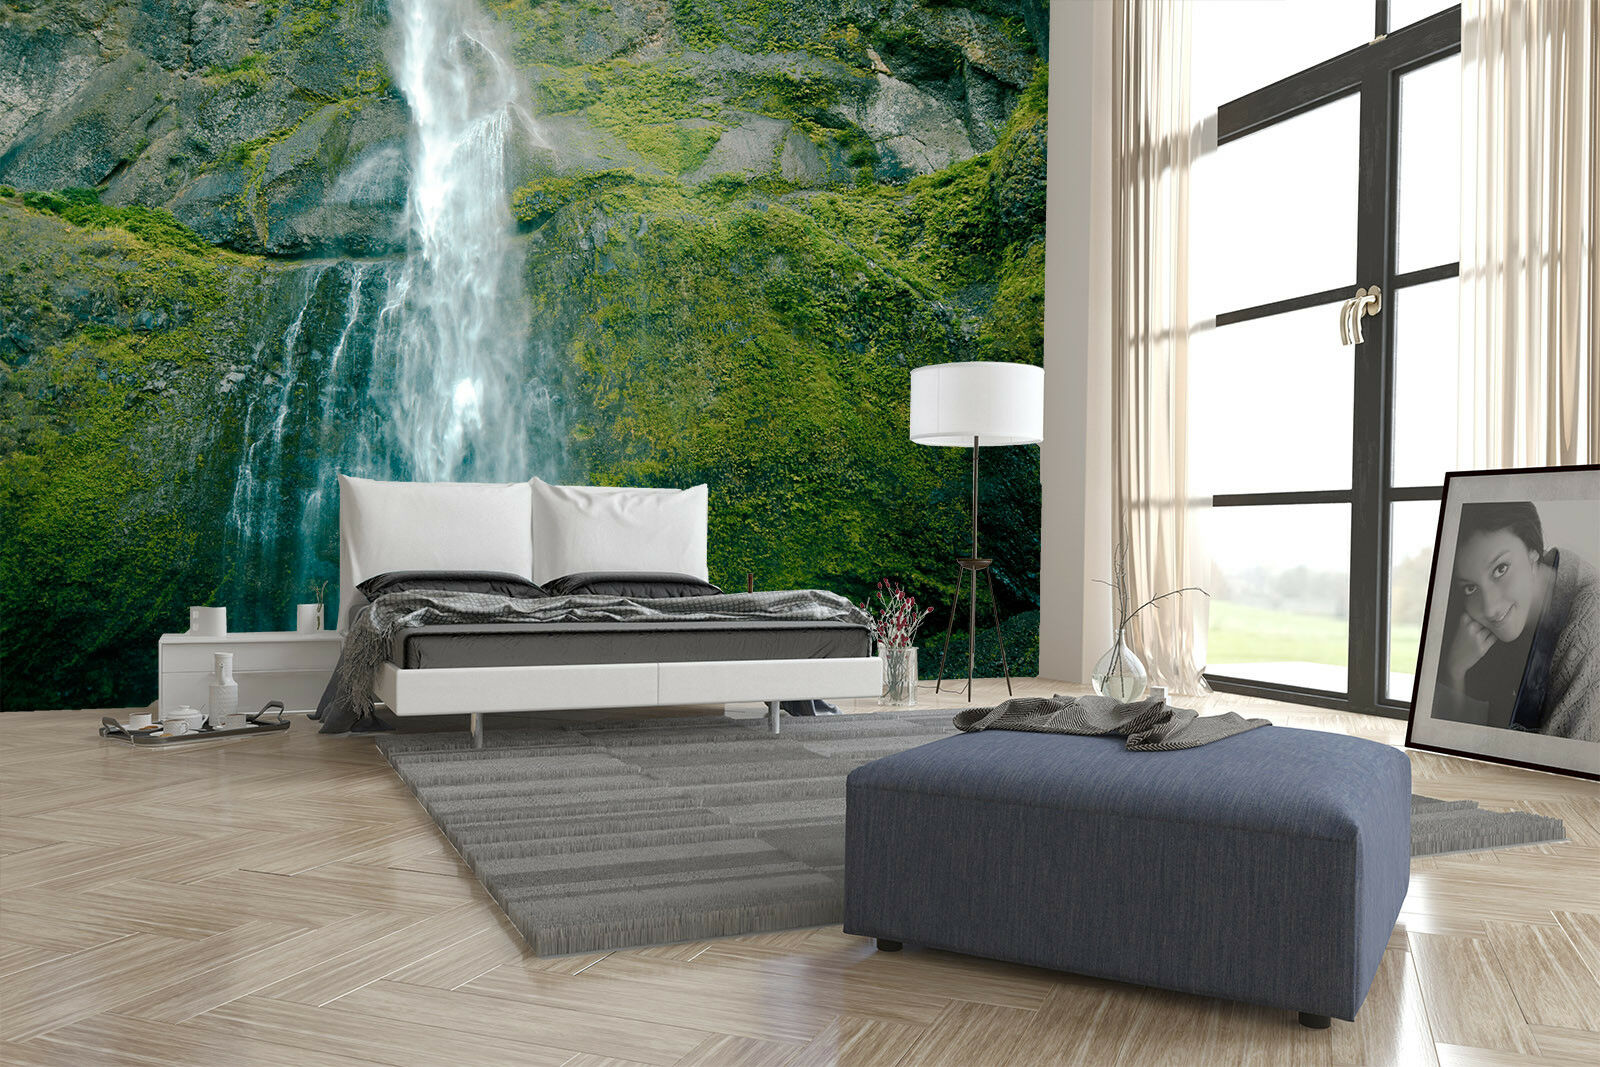 3D Moss Stone Waterfall 45 Wall Paper Wall Print Decal Wall Deco Indoor Mural